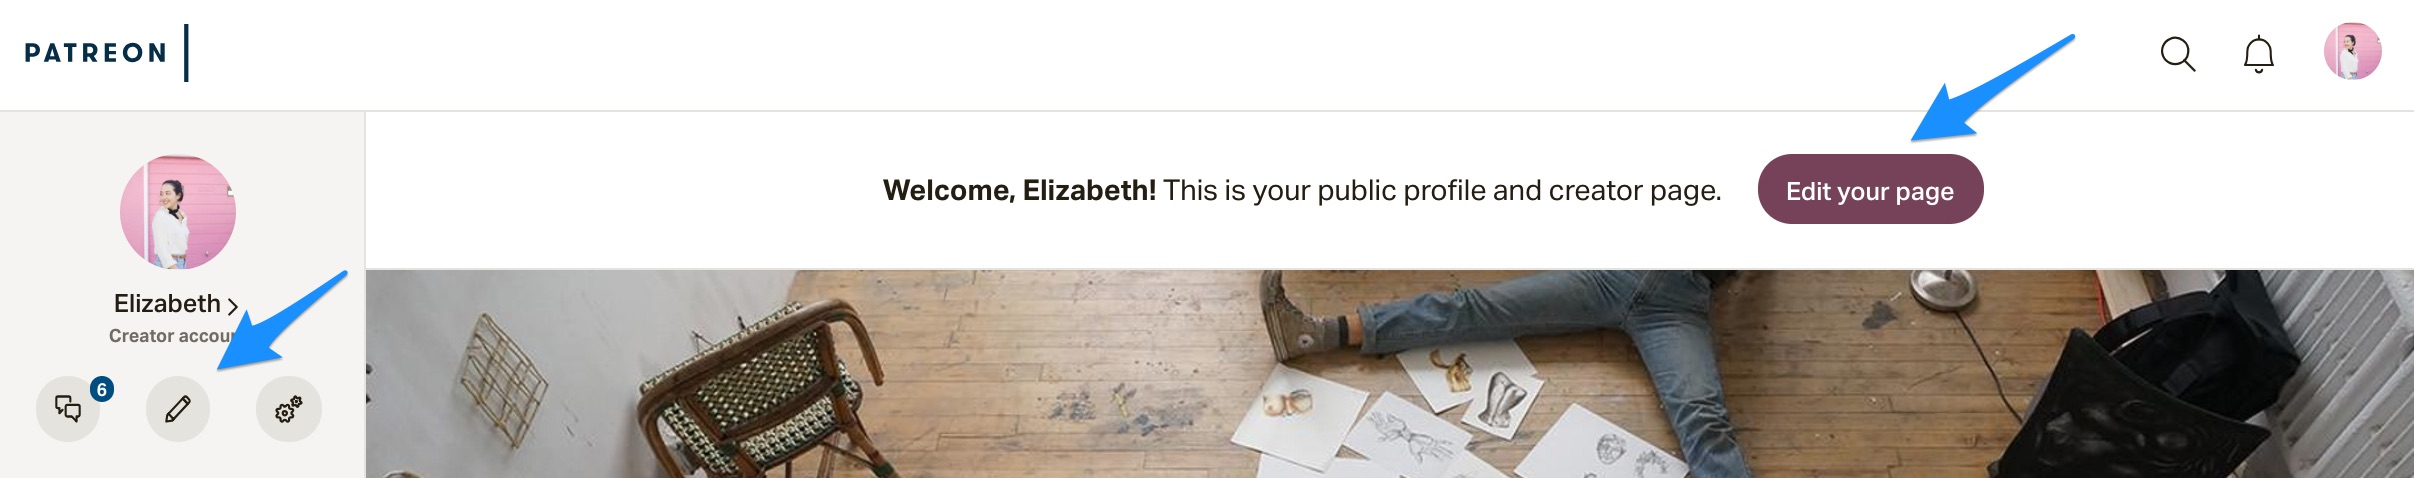 Elizabeth_is_creating_writing___Patreon.jpg